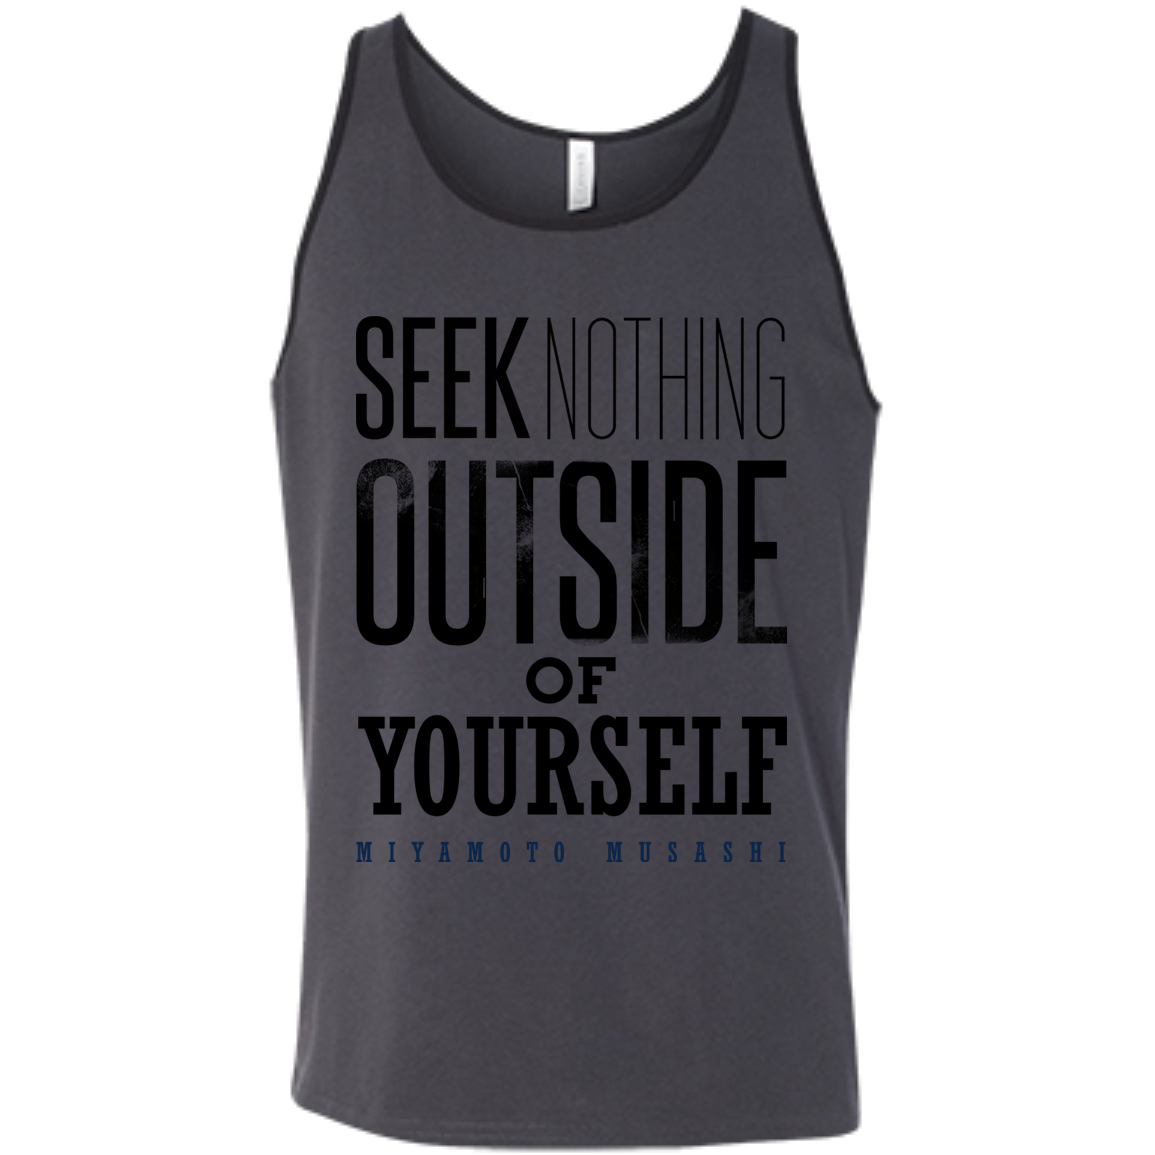 """Seek Nothing"" Tank Top - Martial Arts, Brazilian Jiujitsu, Karate, Muay Thai Shirts"